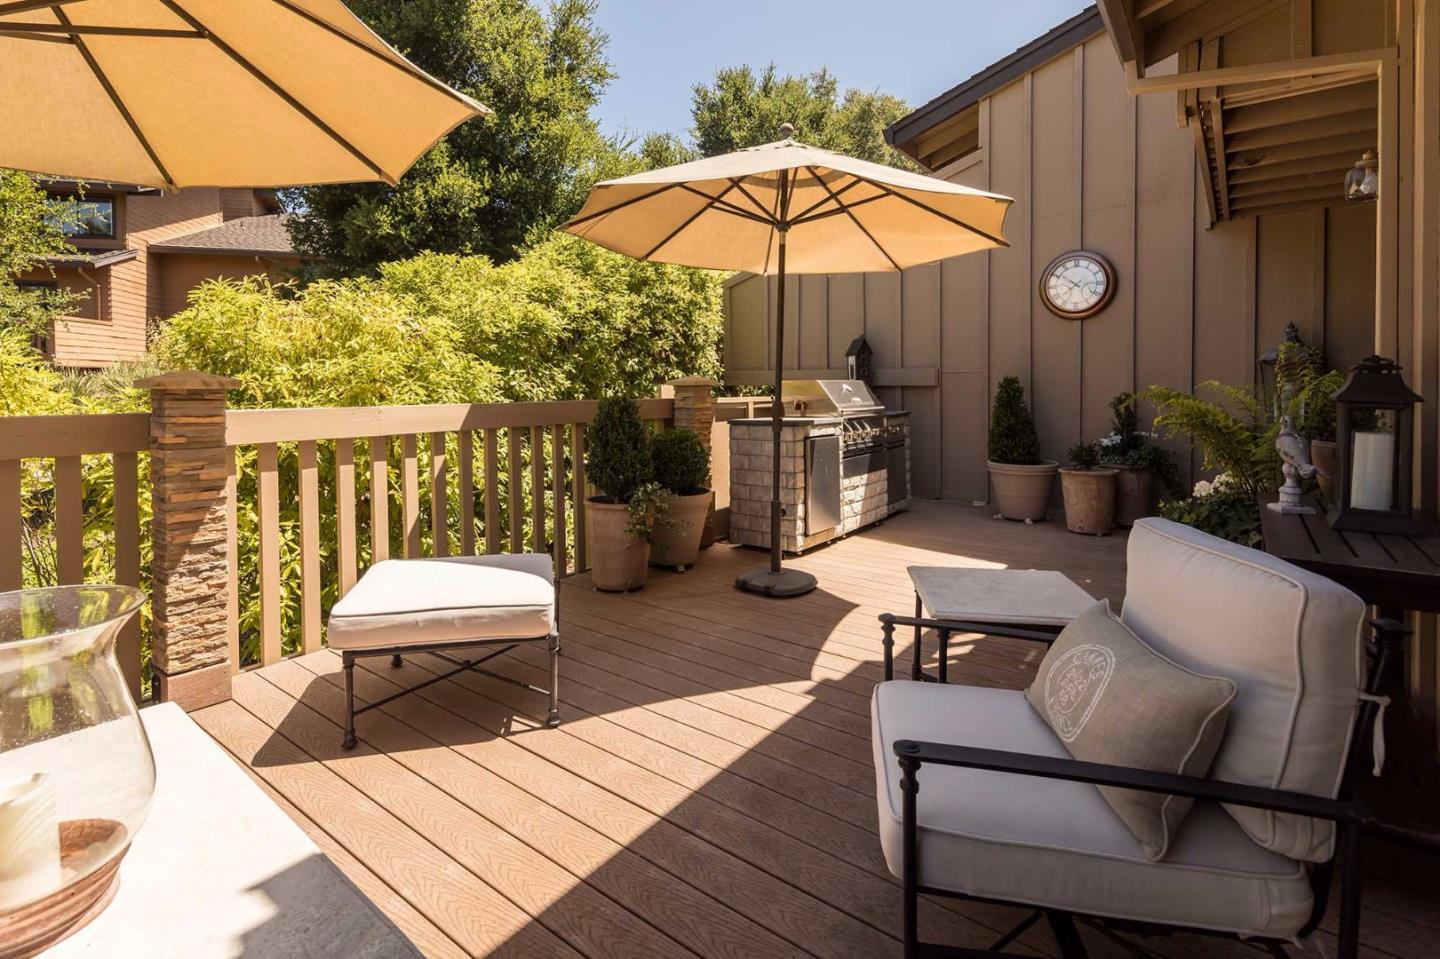 Additional photo for property listing at 43 Biltmore Lane  Menlo Park, California 94025 United States